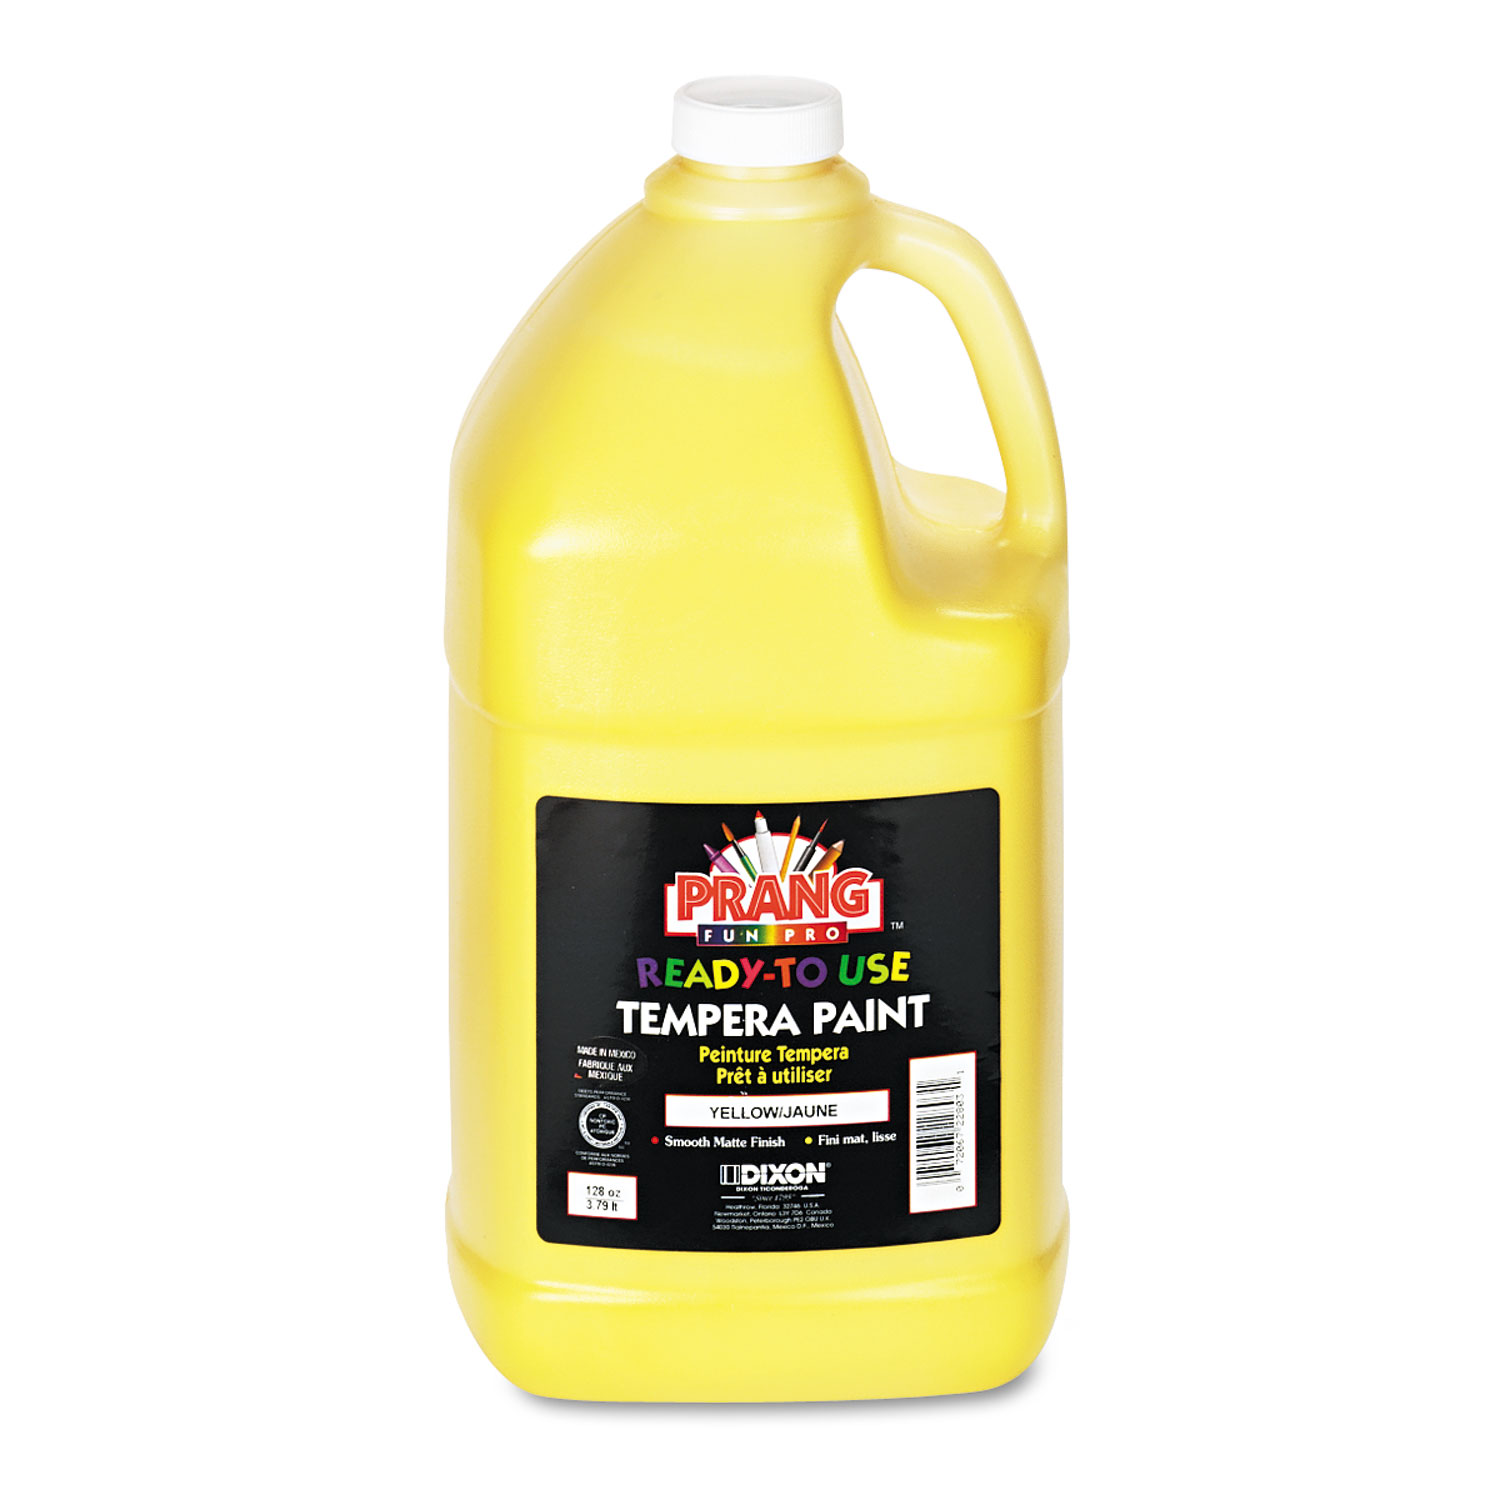 Ready-to-Use Tempera Paint, Yellow, 1 gal